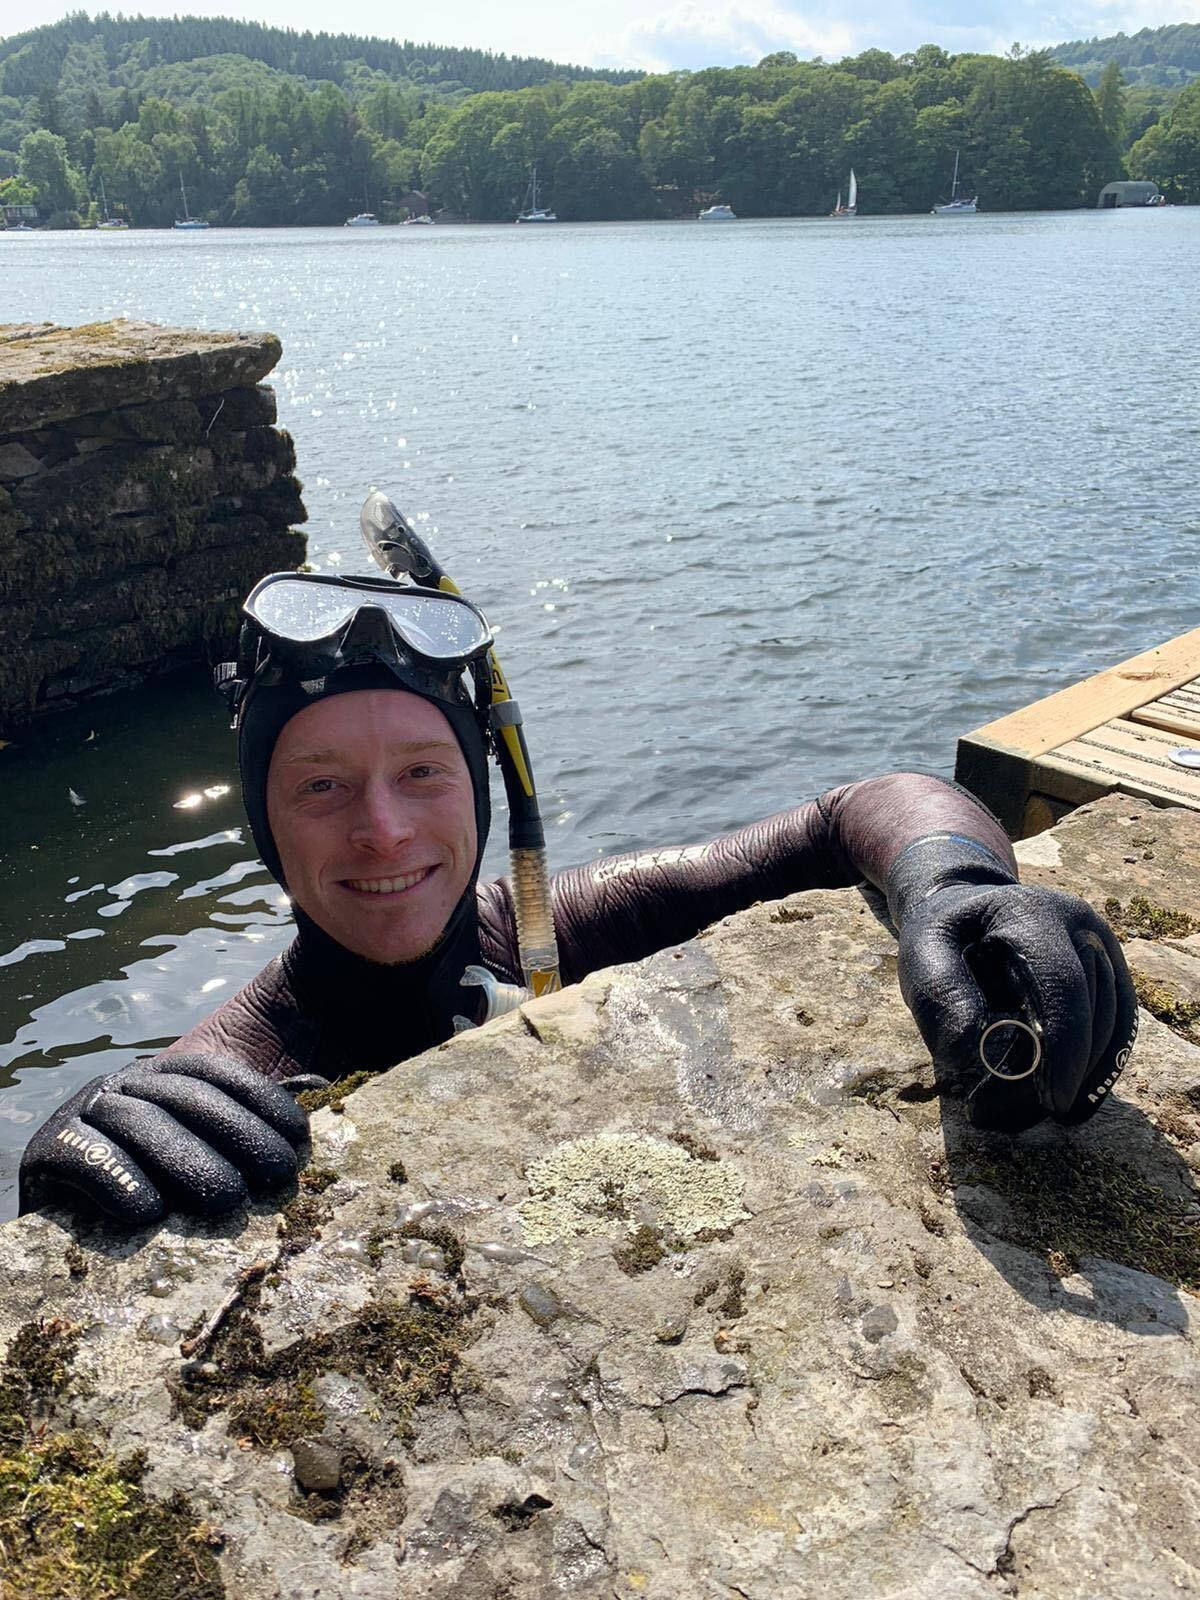 Diver Finds Precious Wedding Ring Lost In Lake... The Morning After